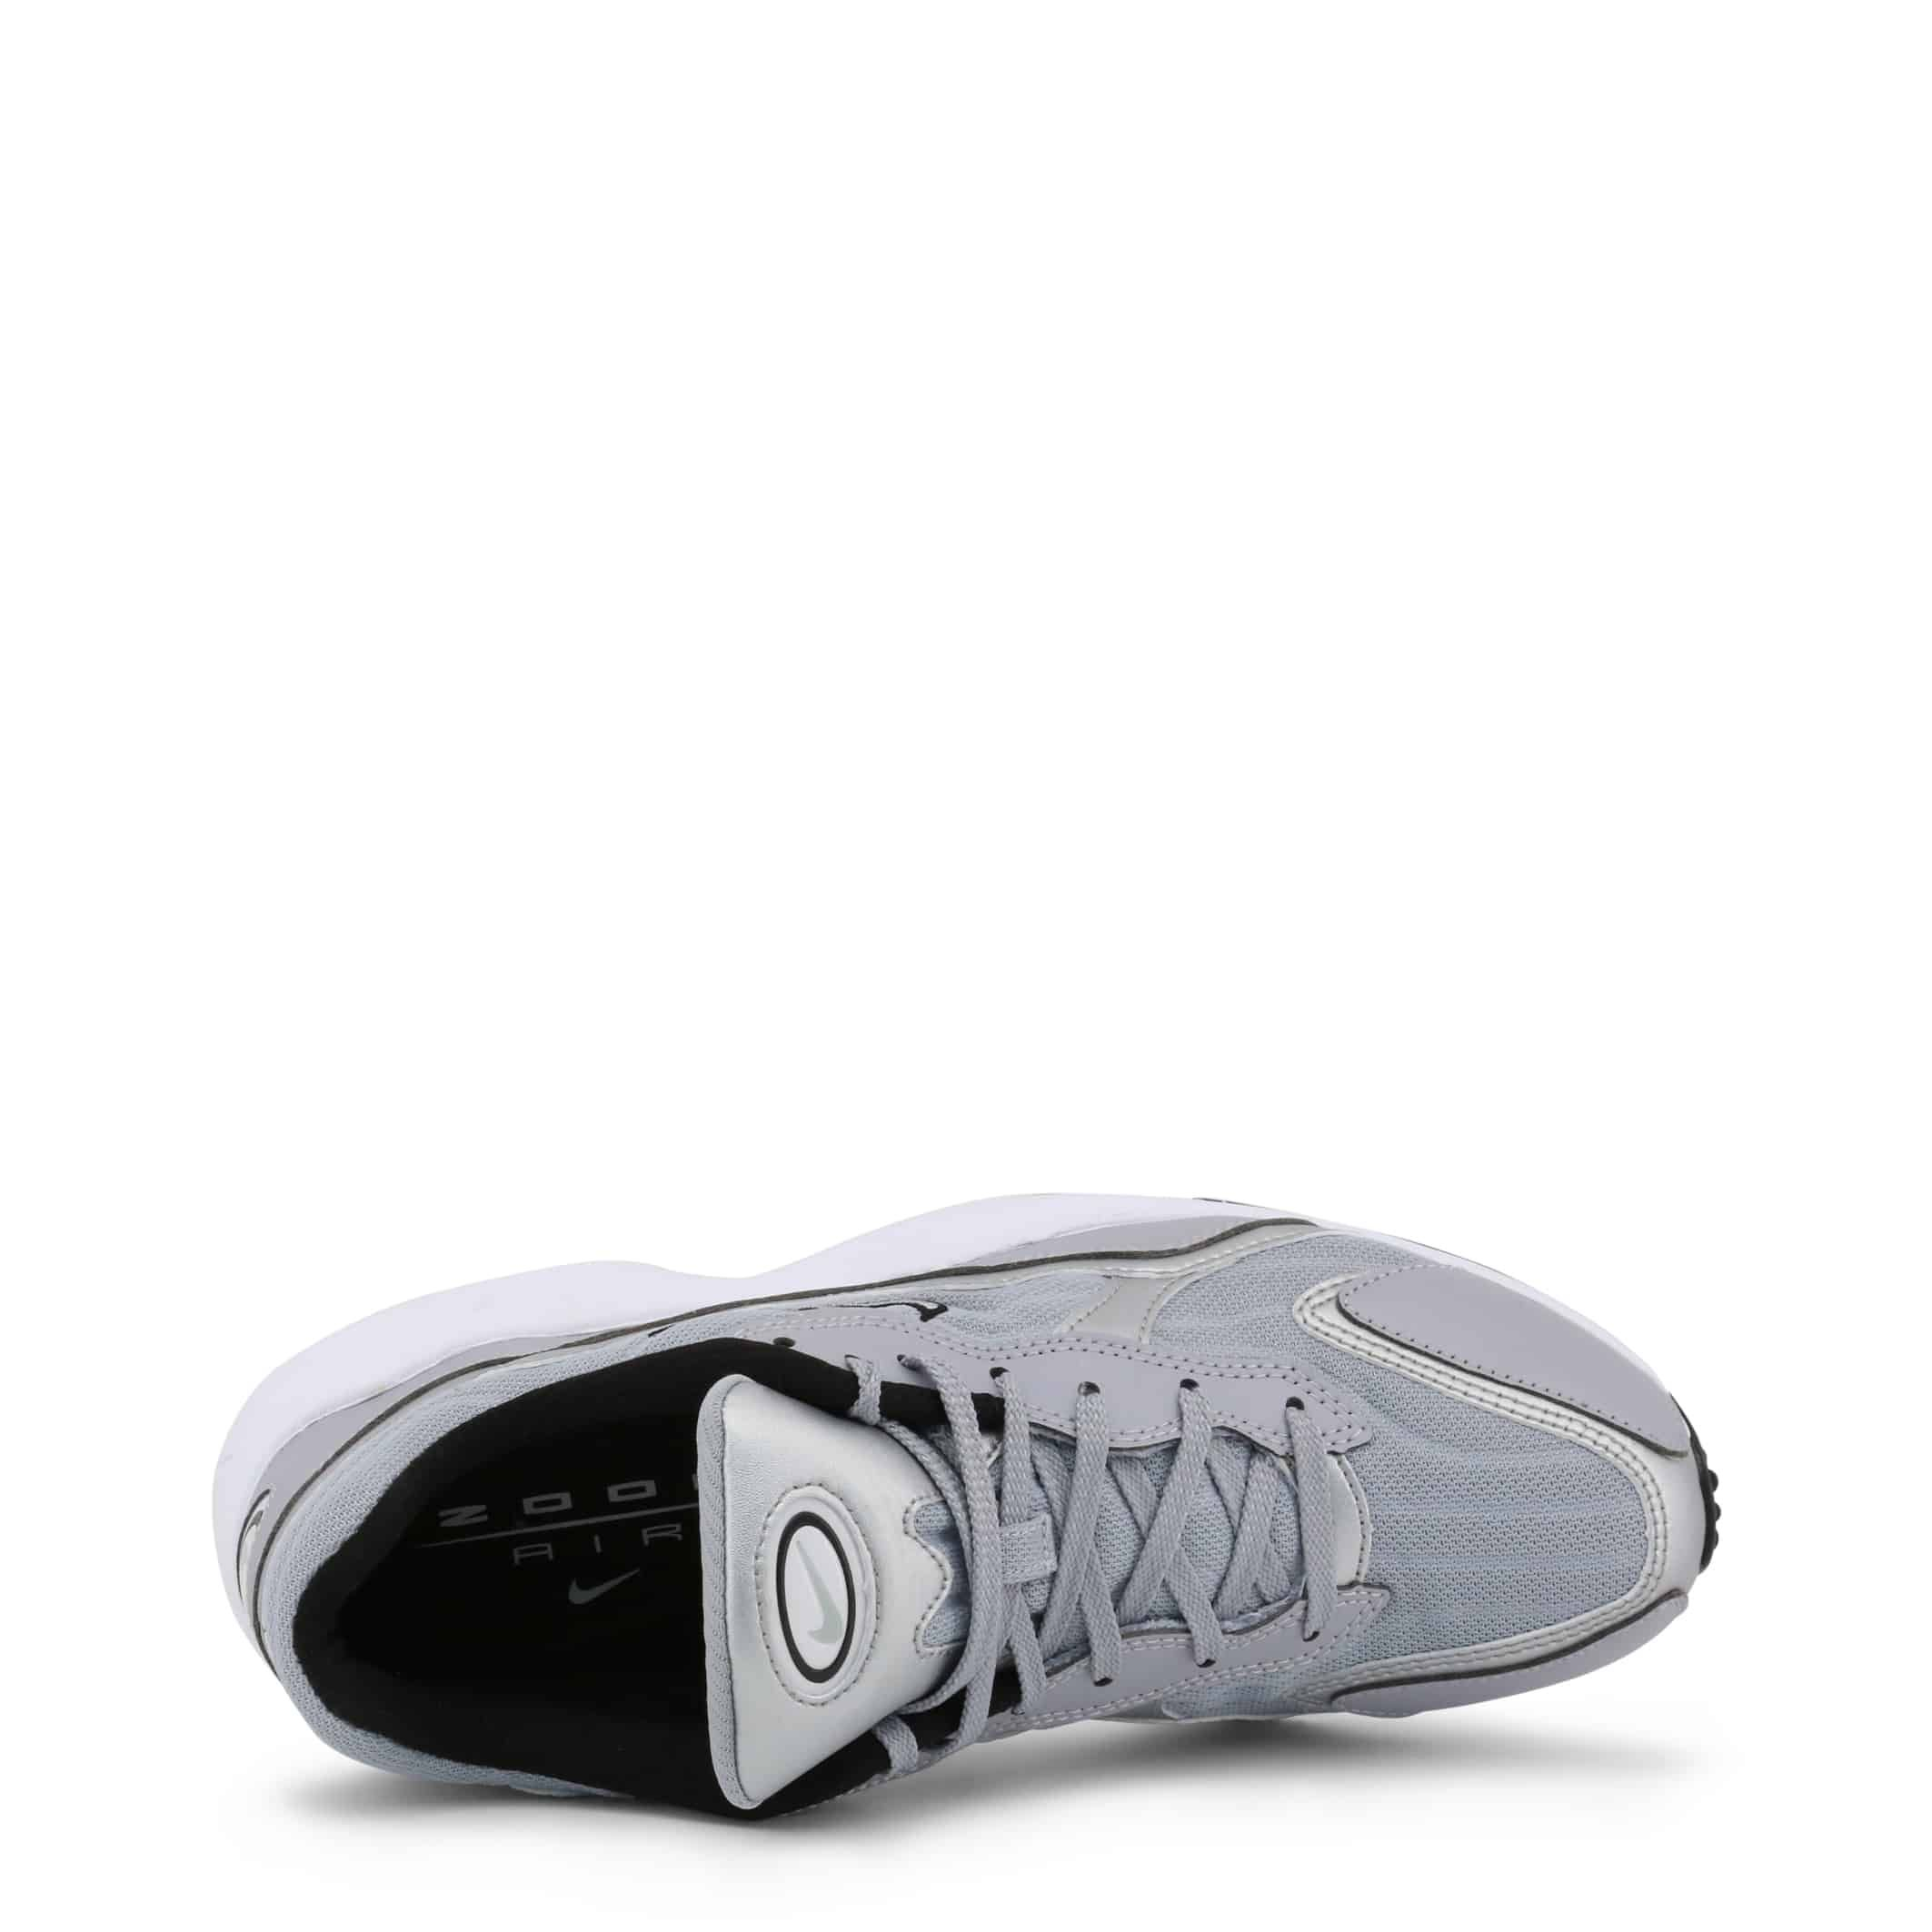 Sneakers Nike – Airzoom-alpha